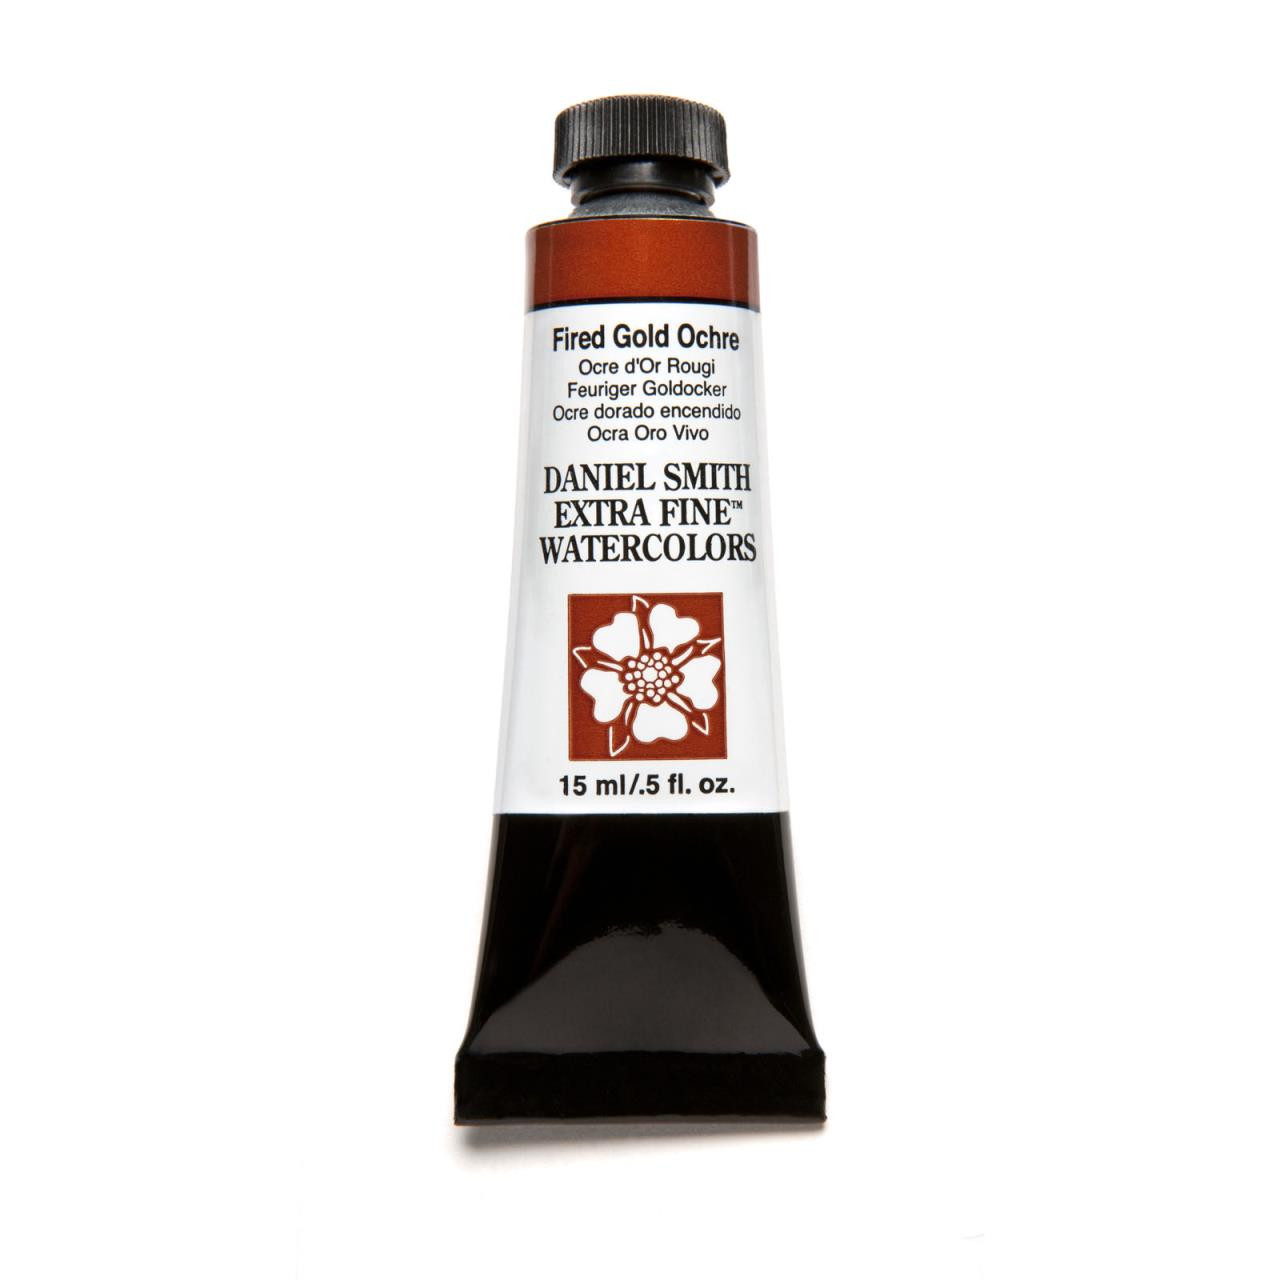 Fired Gold Ochre, DANIEL SMITH Extra Fine Watercolors 15ml Tubes -